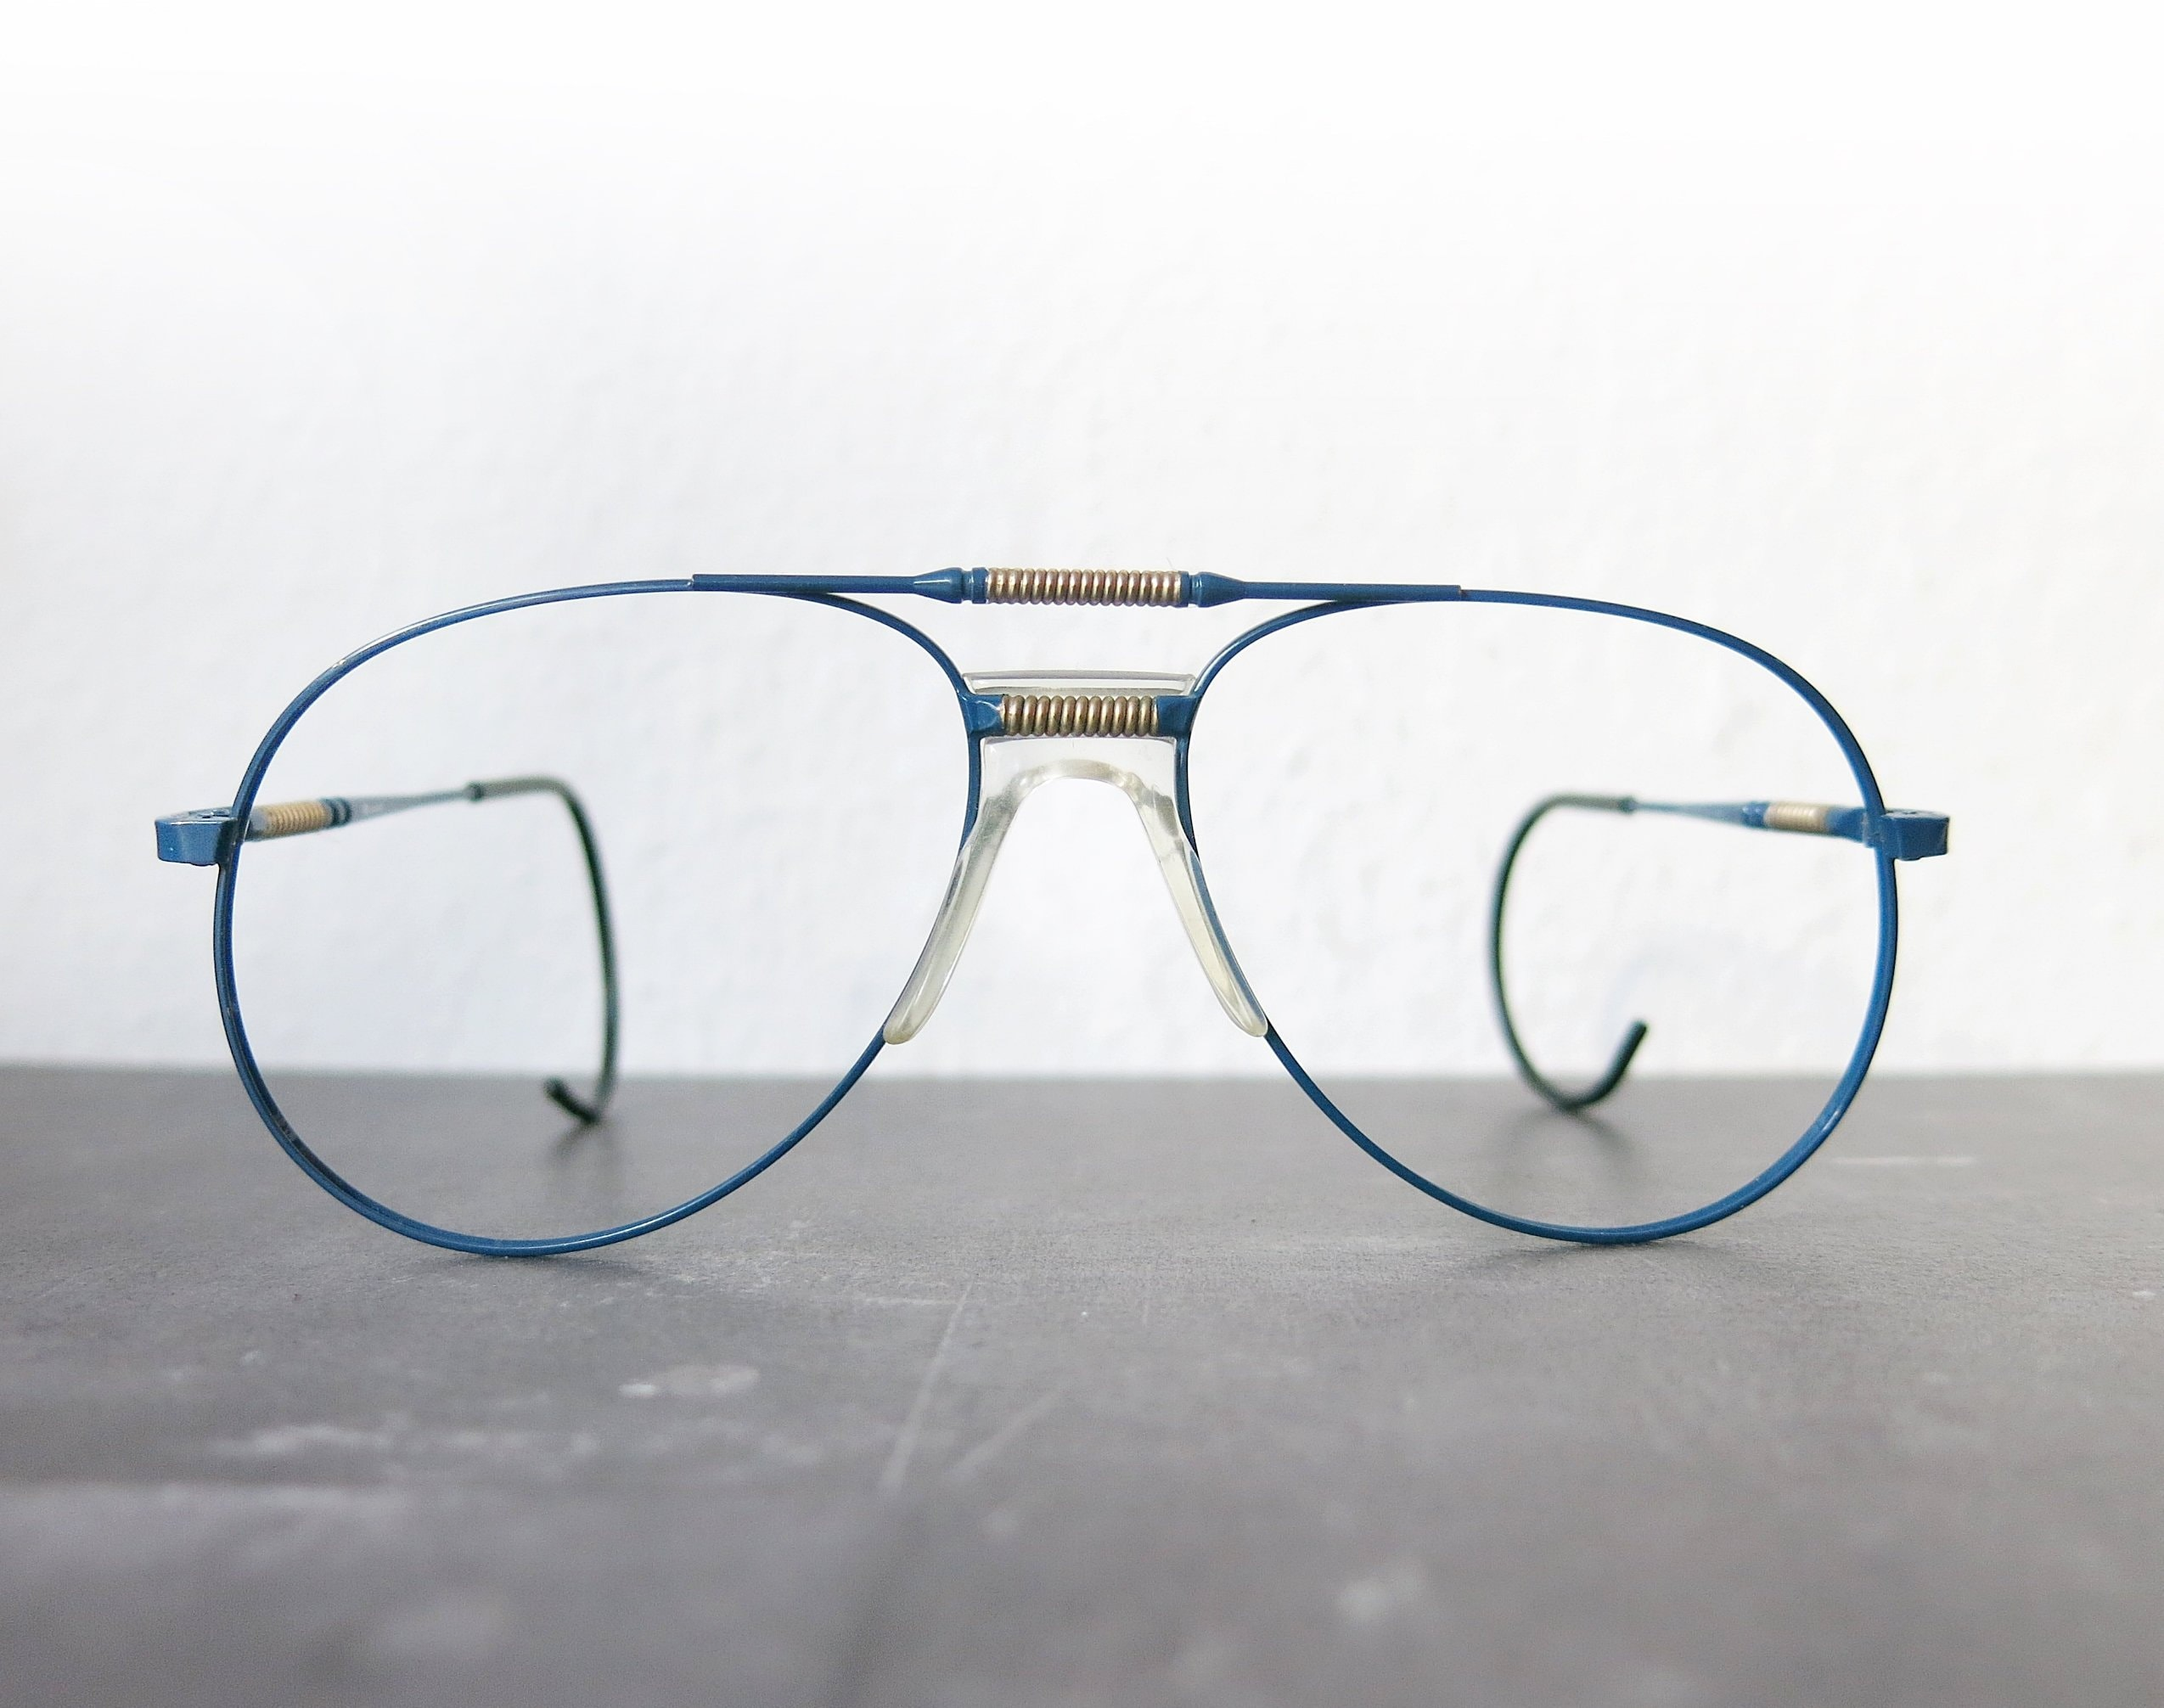 Actuell couture, glasses frame, aviator form, 80's